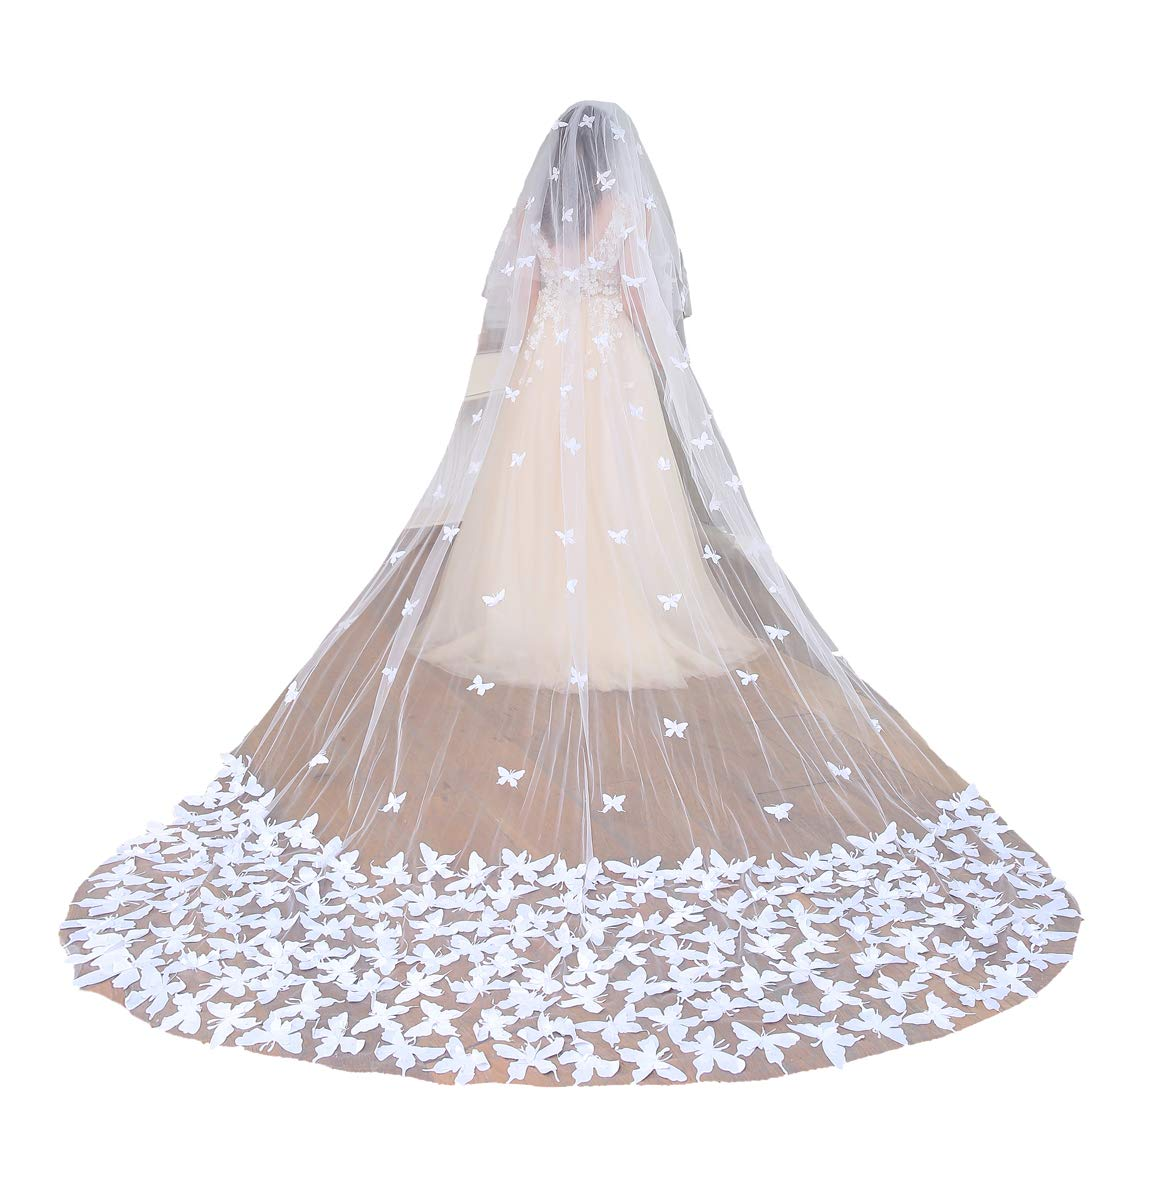 Fenghuavip 2T Wedding Veils Cathedral Veil for Brides with Butterfly Appliques (White)